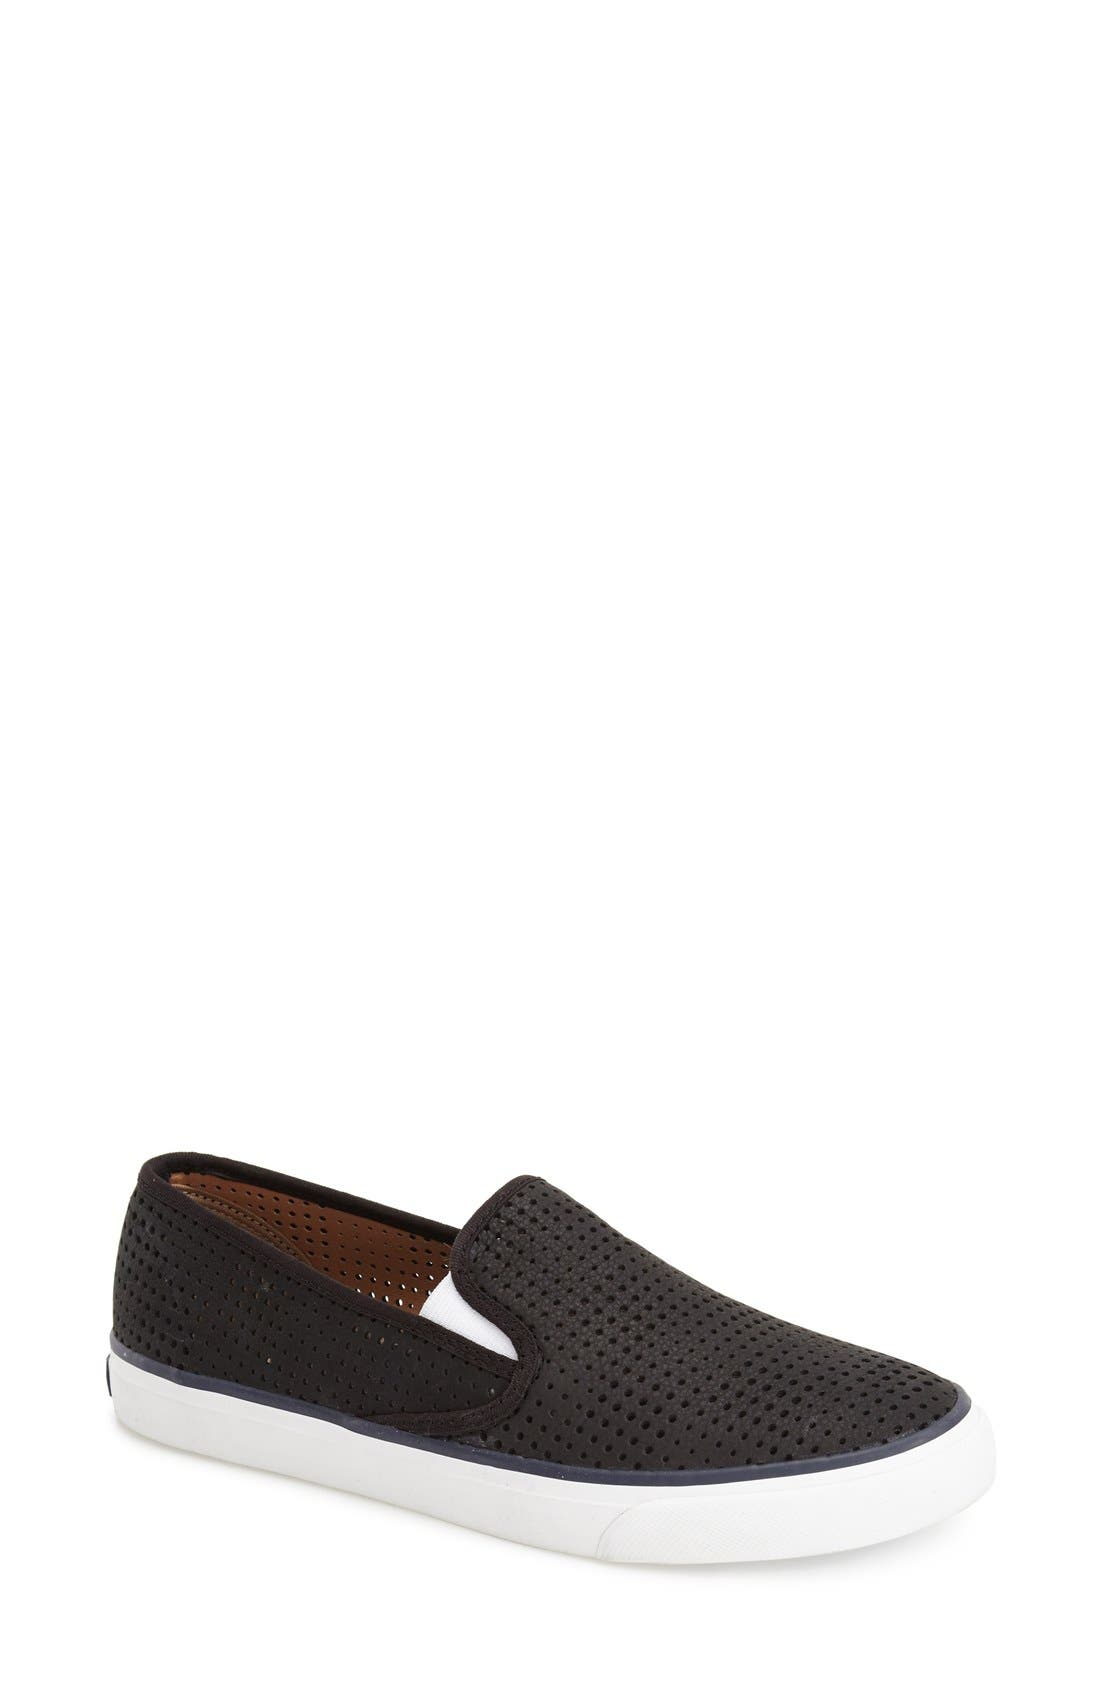 'Seaside' Perforated Slip-On Sneaker,                         Main,                         color, 001